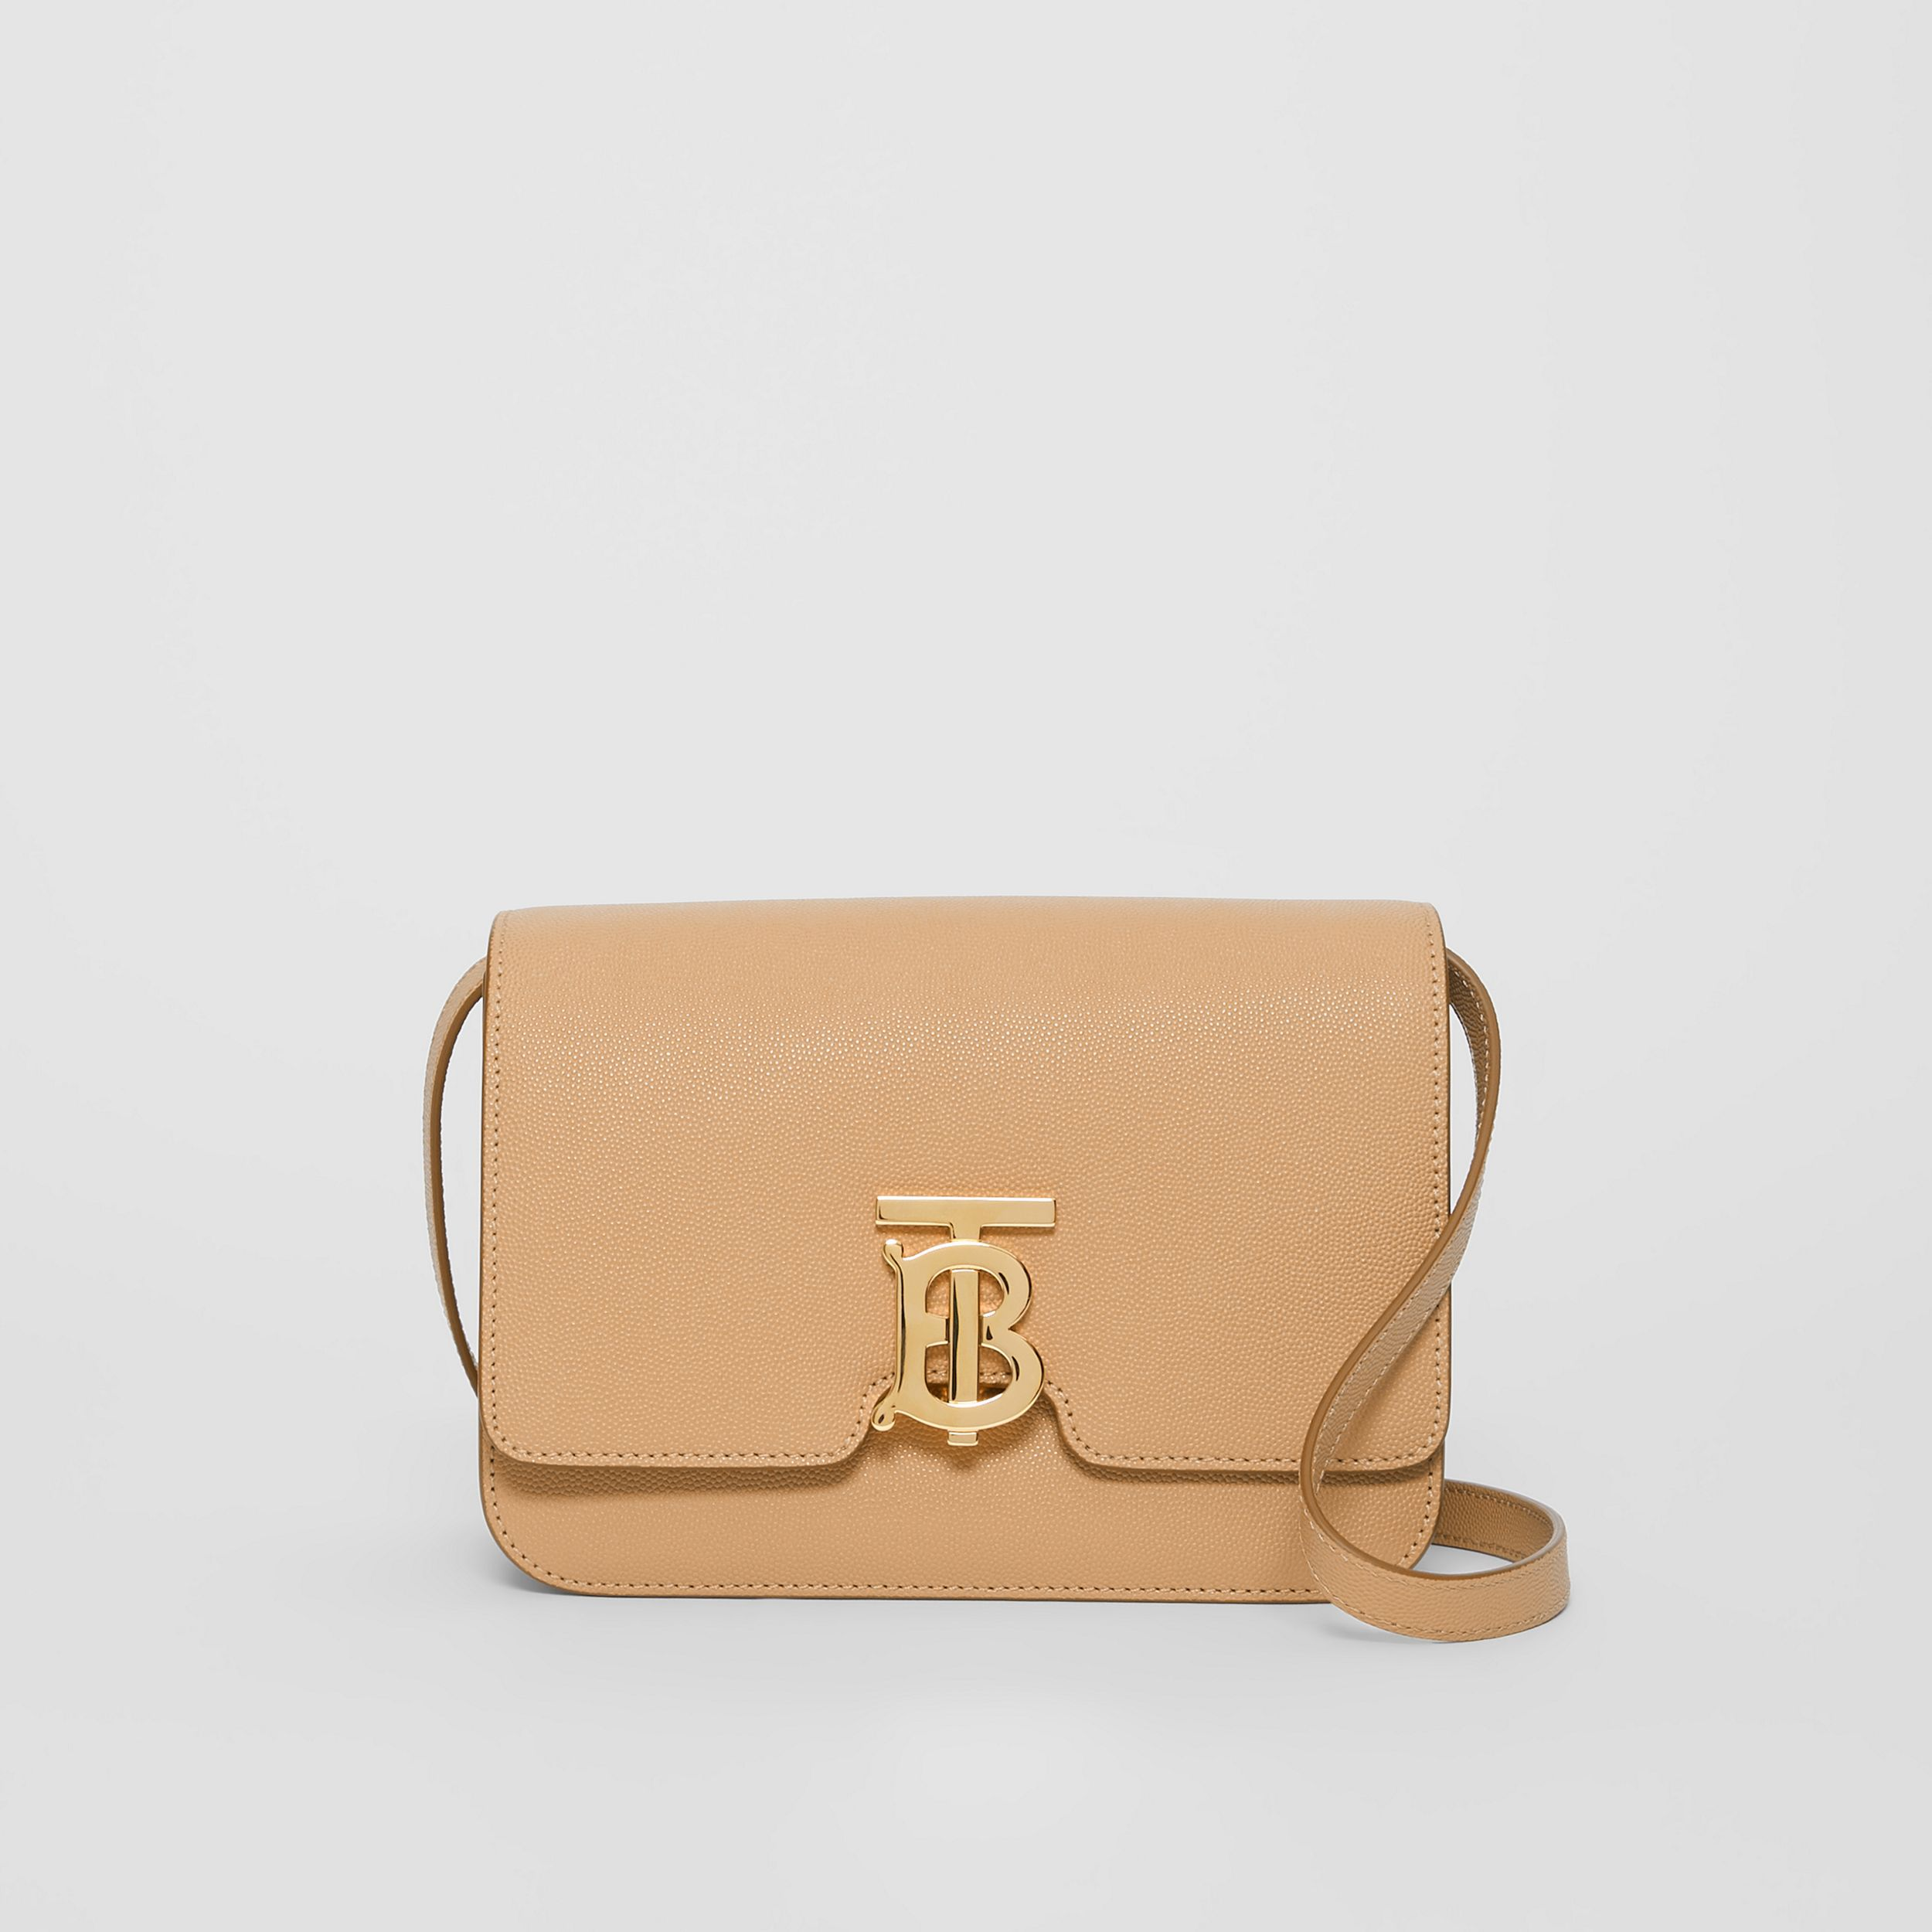 Small Grainy Leather TB Bag in Archive Beige - Women | Burberry - 1